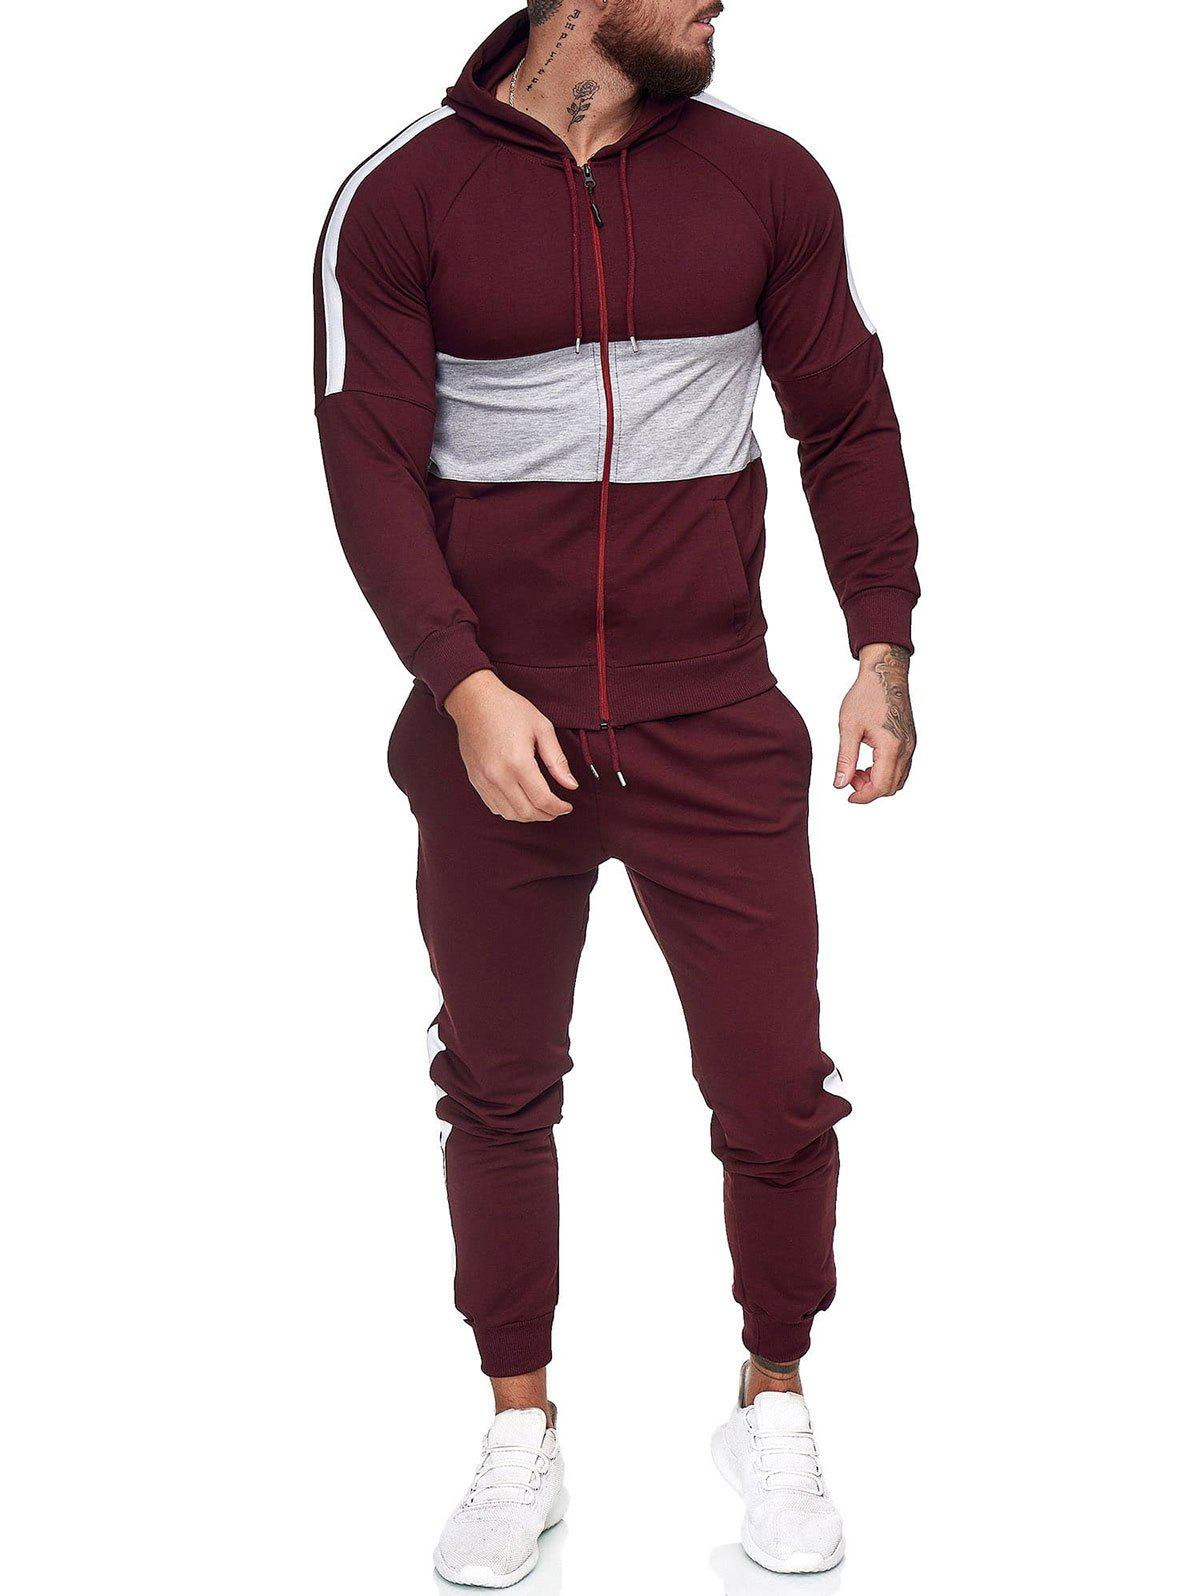 Contrast Zip Up Hoodie Jacket and Pants Two Piece Sports Set - RED WINE L